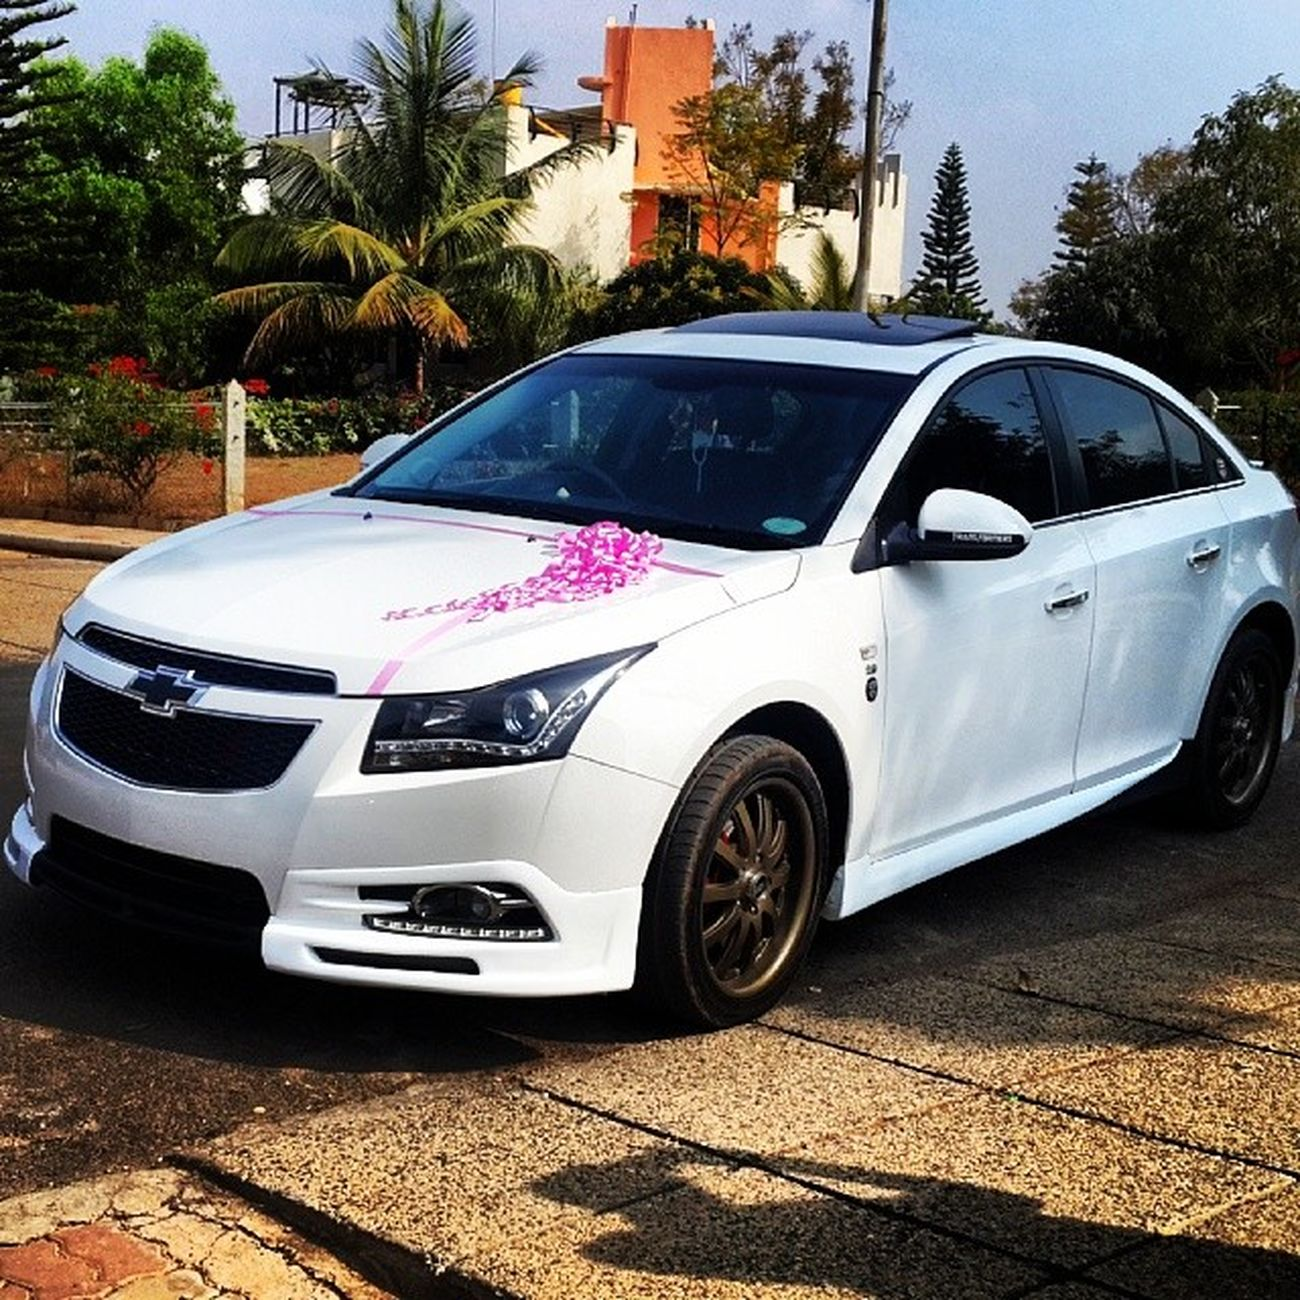 Wedding cruzeee Chevy Cruze Wedding Car whiteandpinkcruzeworldcruzenationcruzeteamchevycruzechevyteam